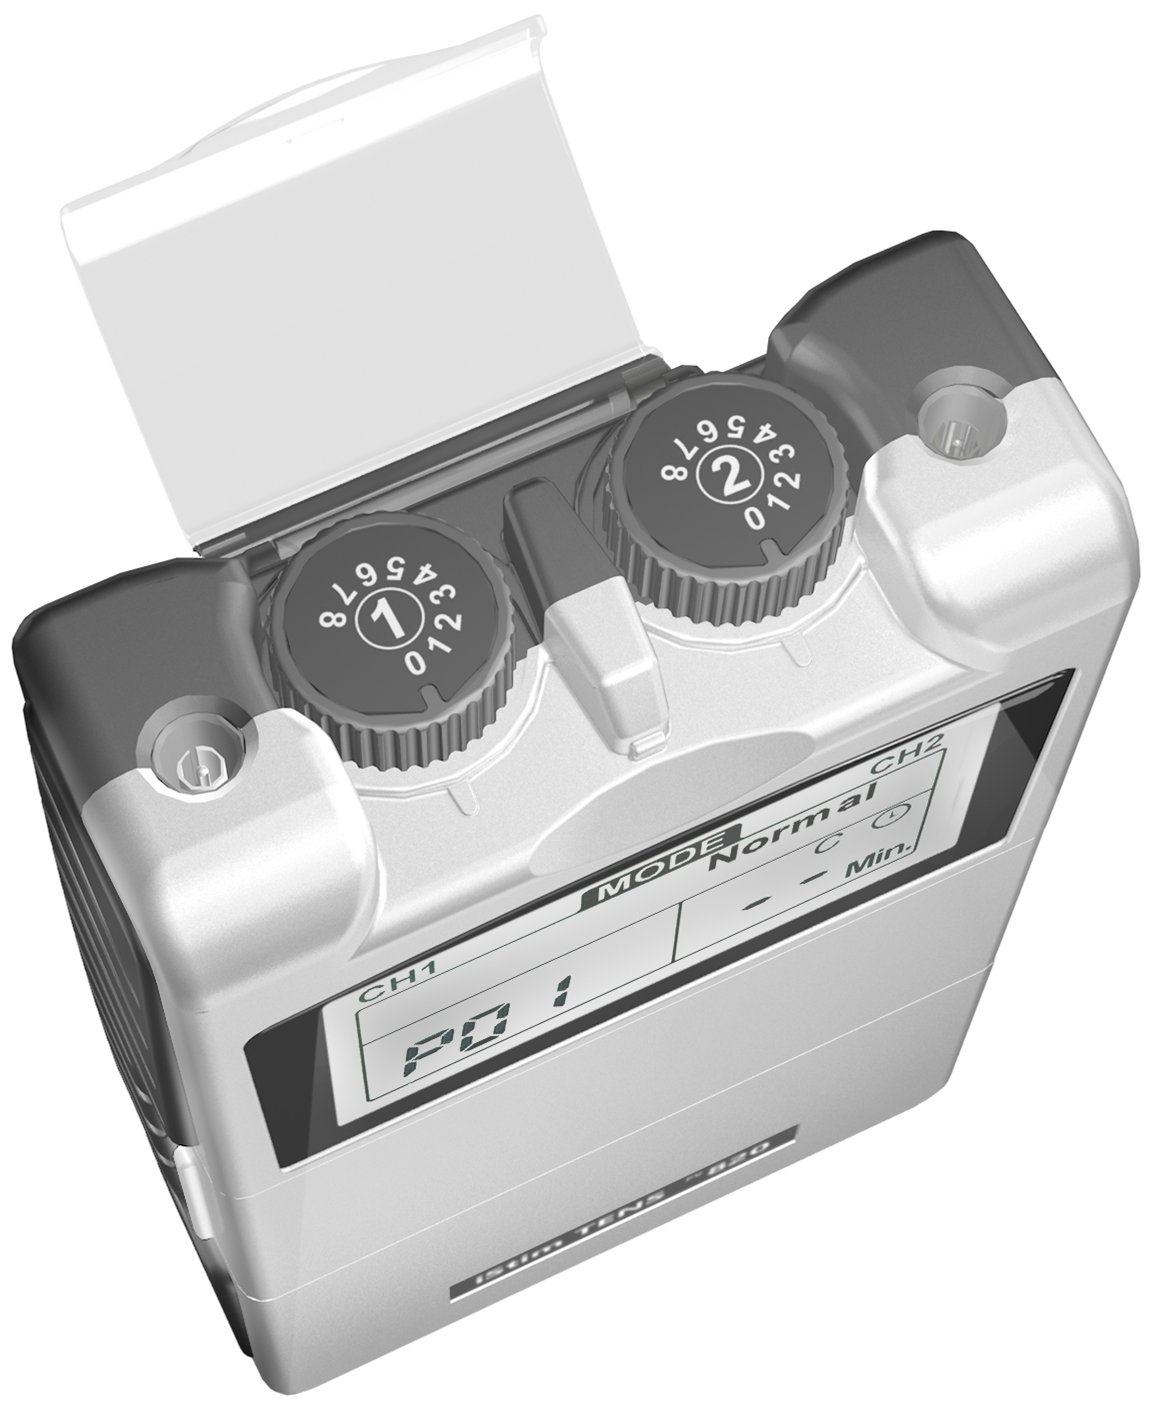 FDA Cleared TENS Unit iStim EV-820 TENS Machine for Pain Management, Back Pain and Rehabilitation by iSTIM (Image #3)